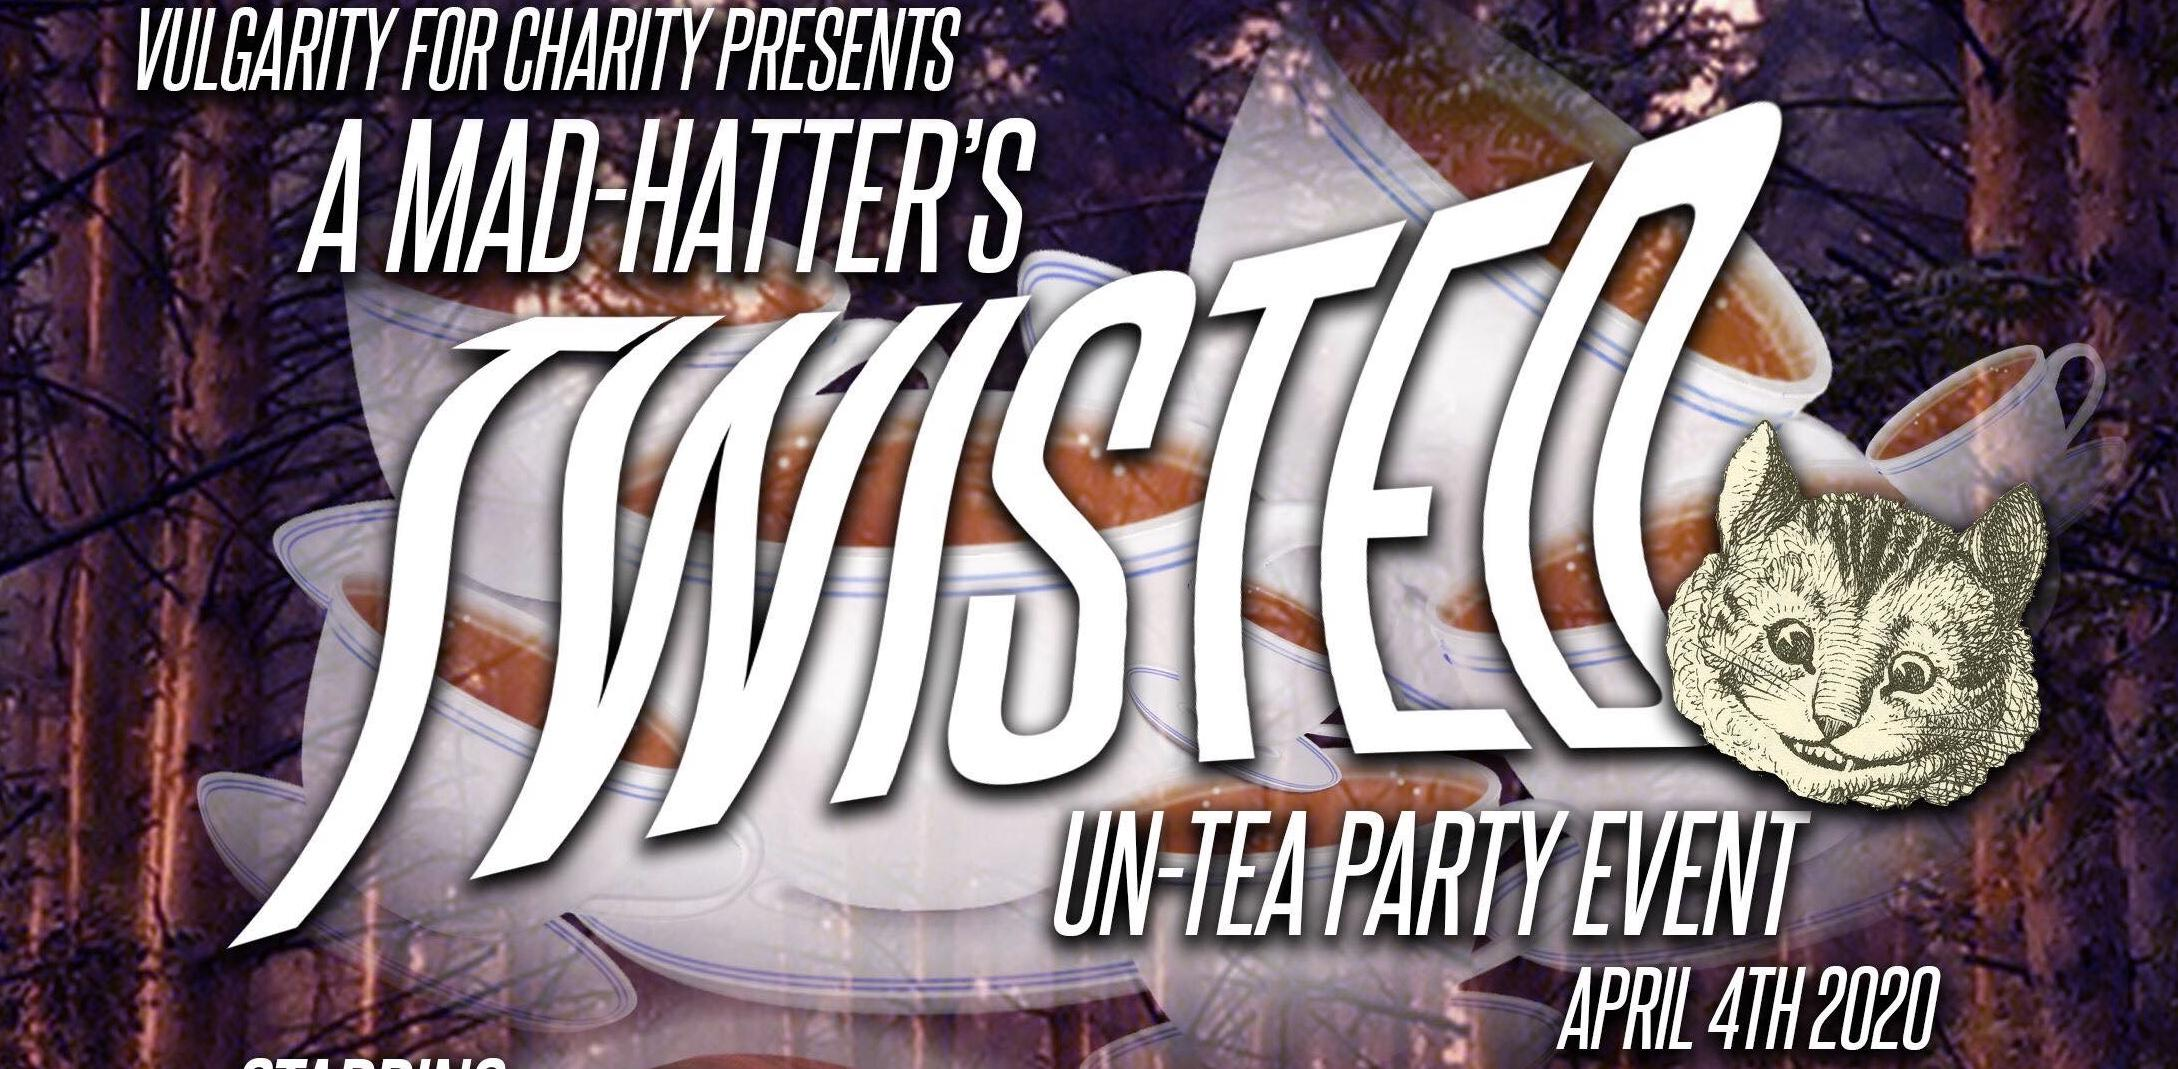 The Mad Hatter's Twisted Un-Tea Party Charity Event!